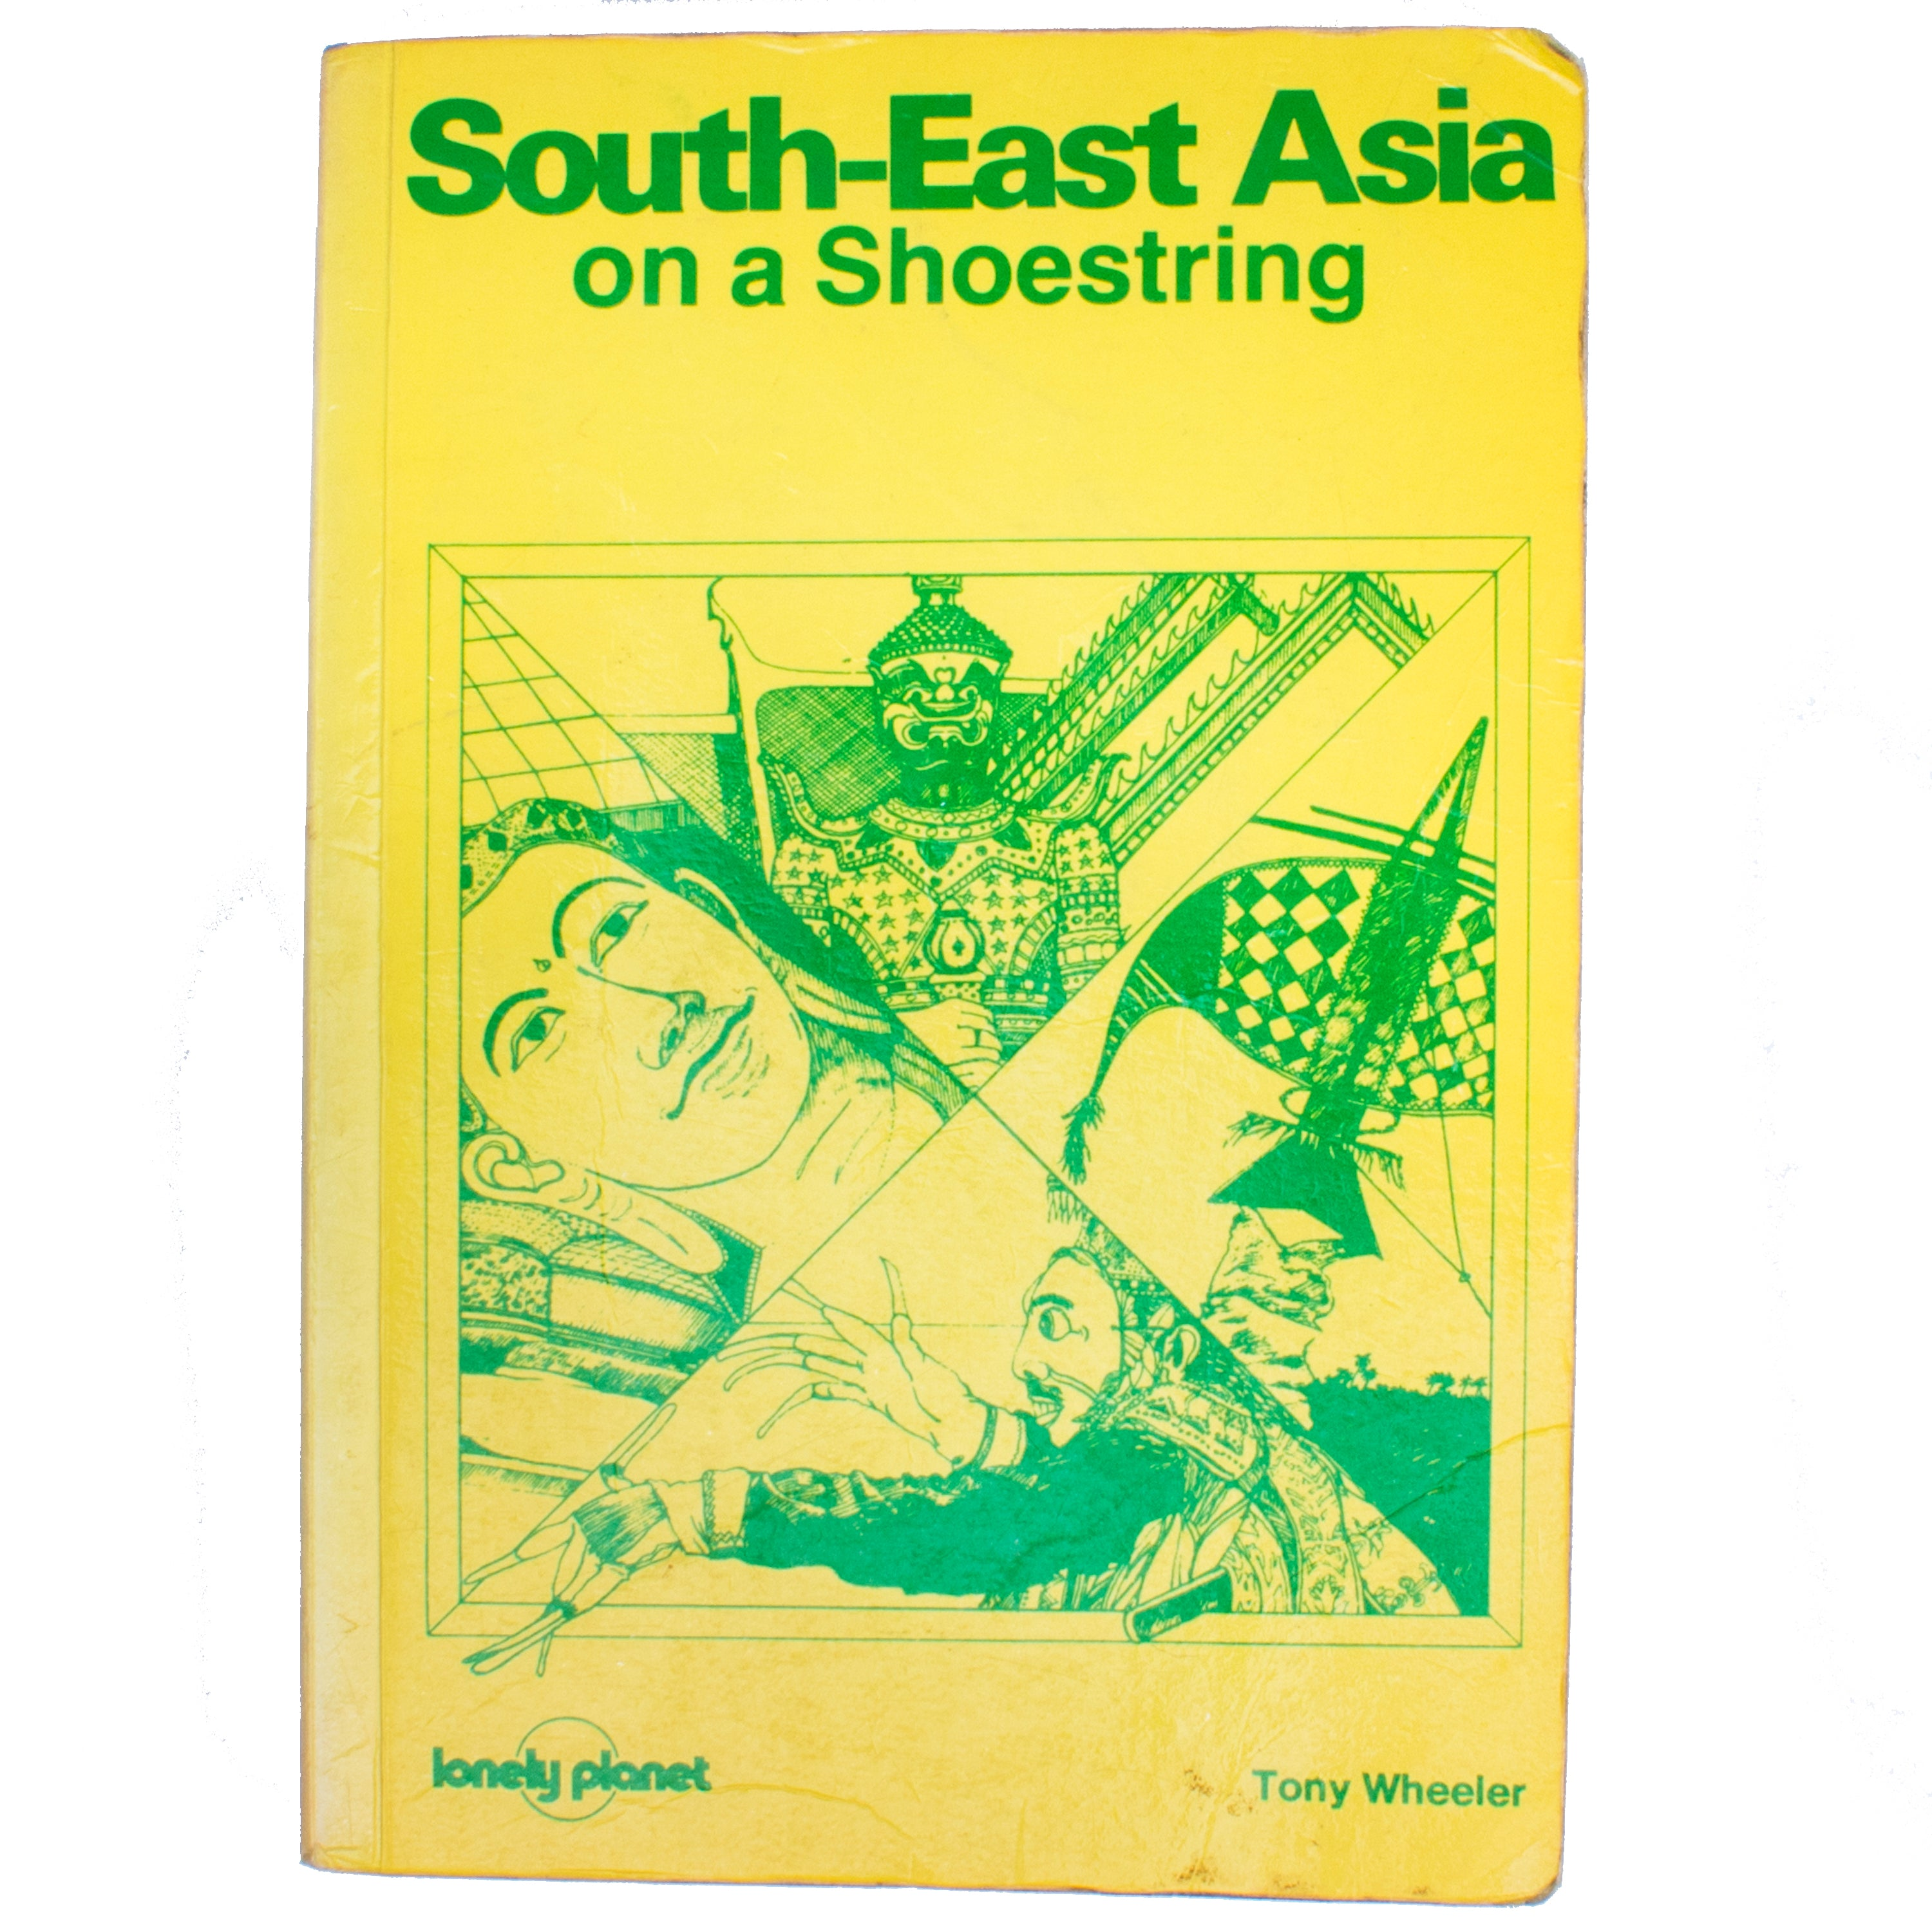 Southeast Asia on a Shoestring, 1982